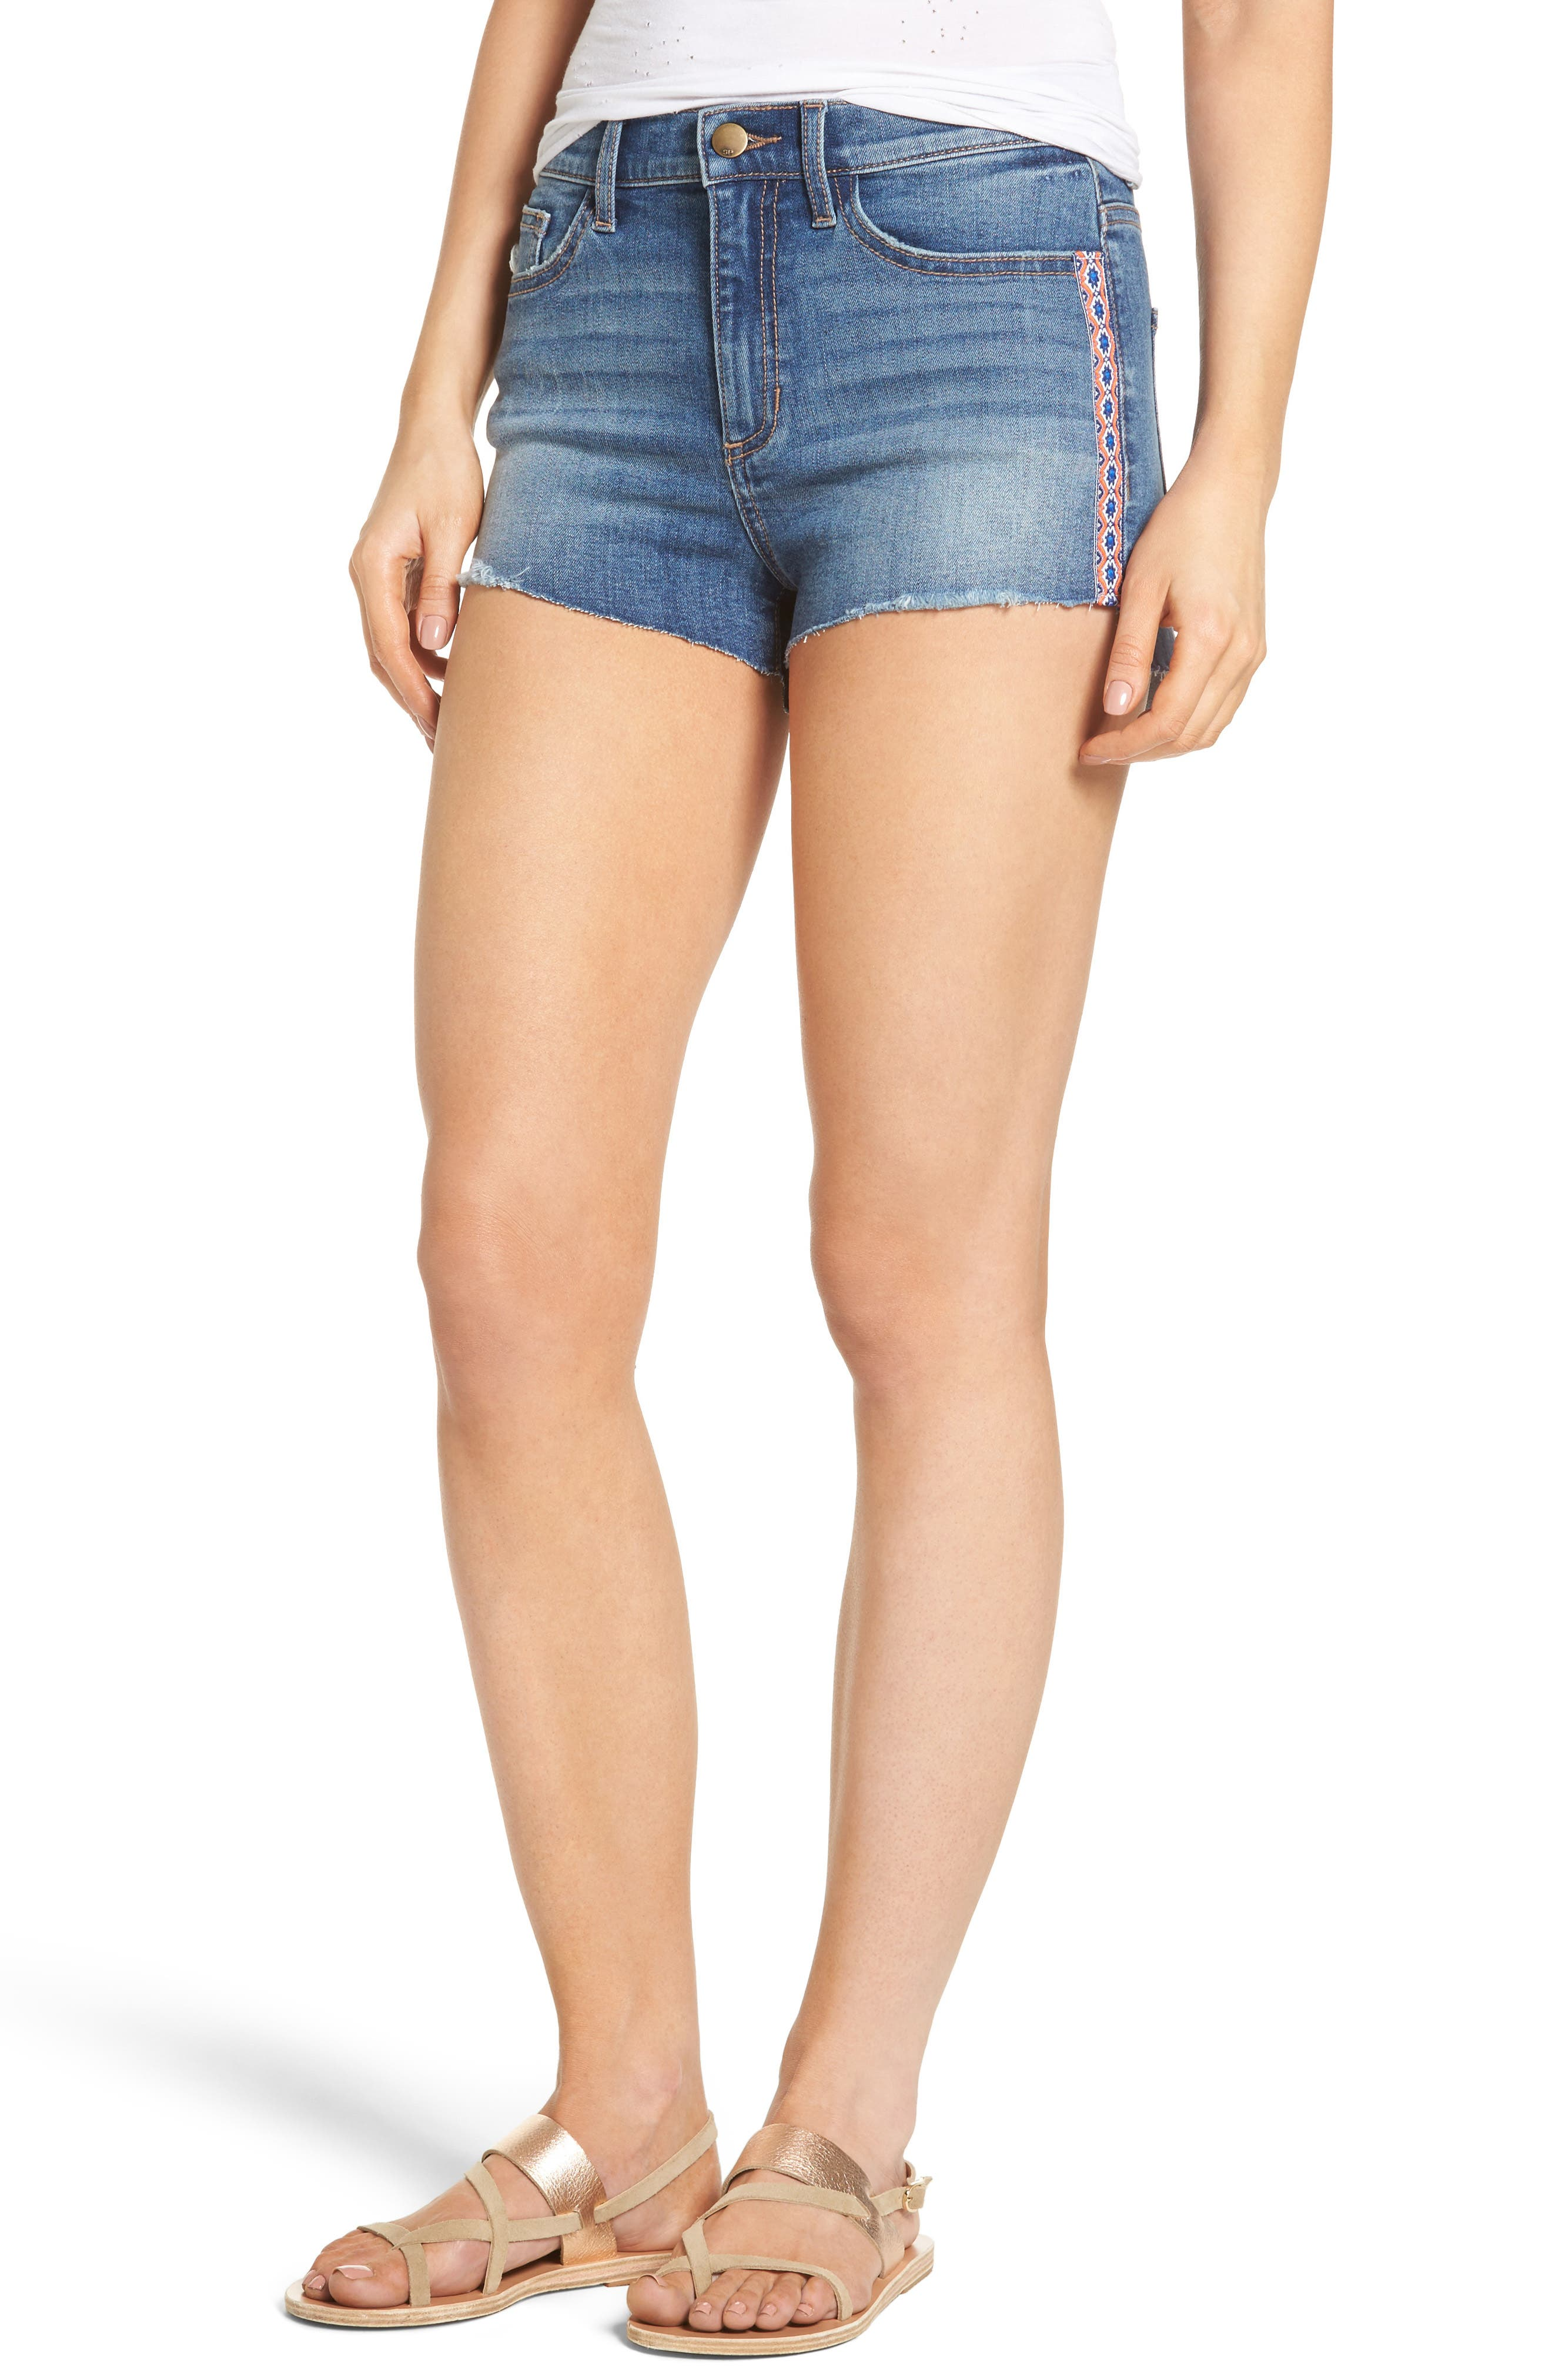 SP. Black Embroidered Trim Cutoff Denim Shorts